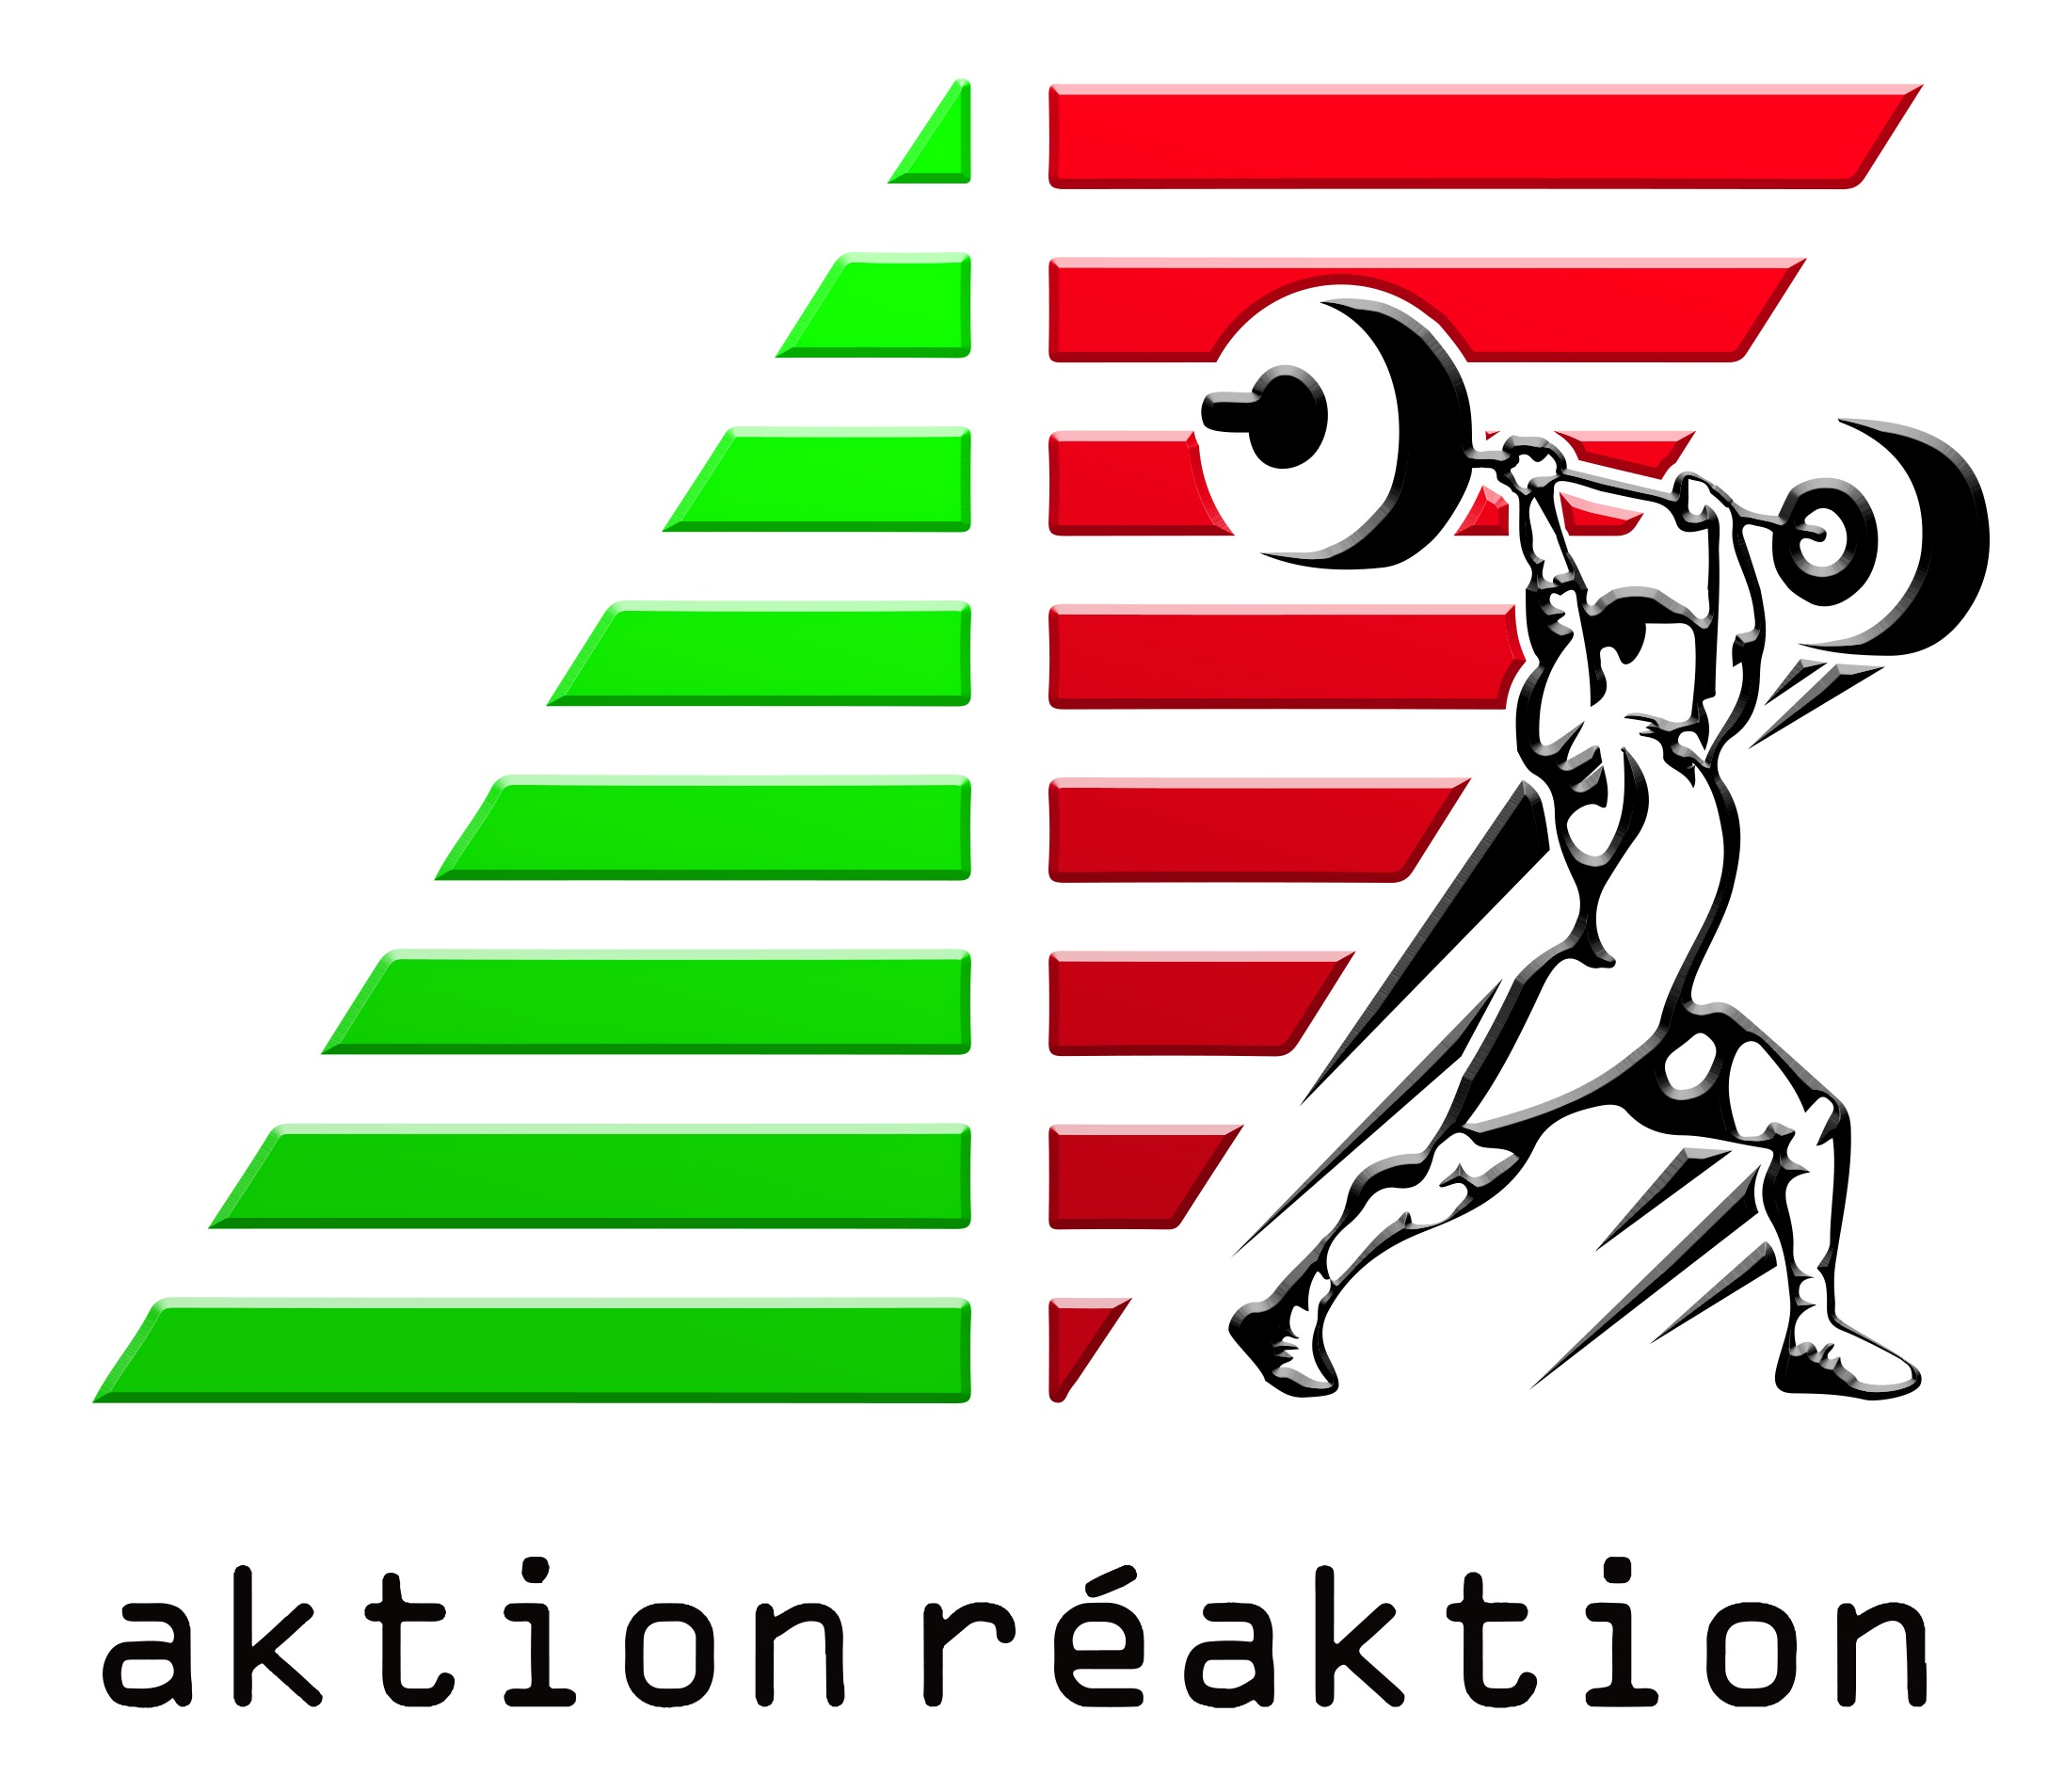 aktion réaktion gym